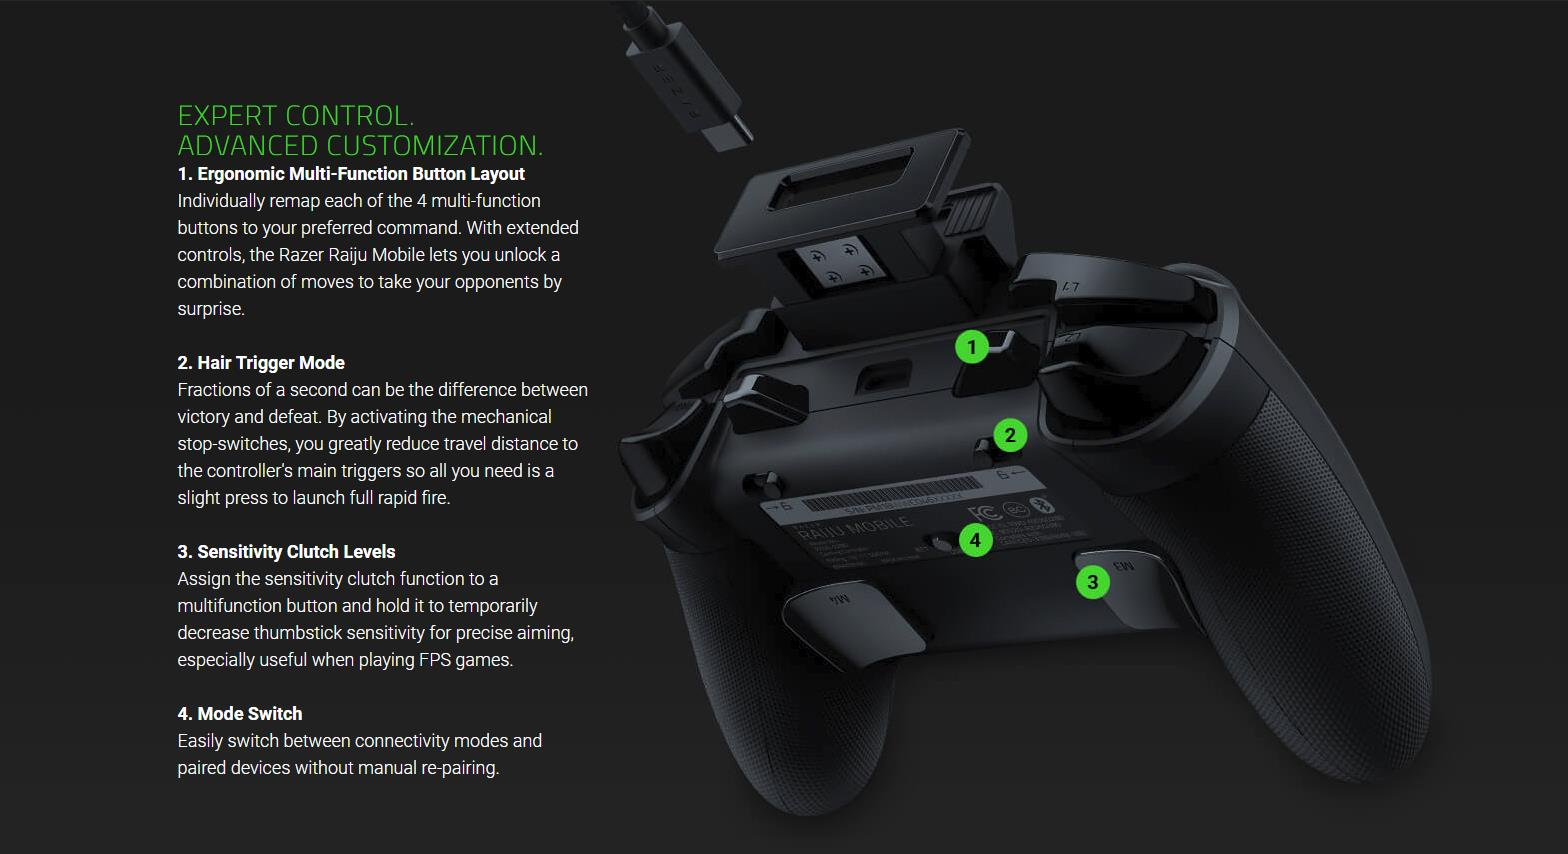 Razer Raiju Mobile Gaming Controlle End 8 12 2021 10 15 Am Mobile game developers in general still seem somewhat hesitant to include proper support for bluetooth controls. razer raiju mobile gaming controller for android rz06 02800100 r3m1